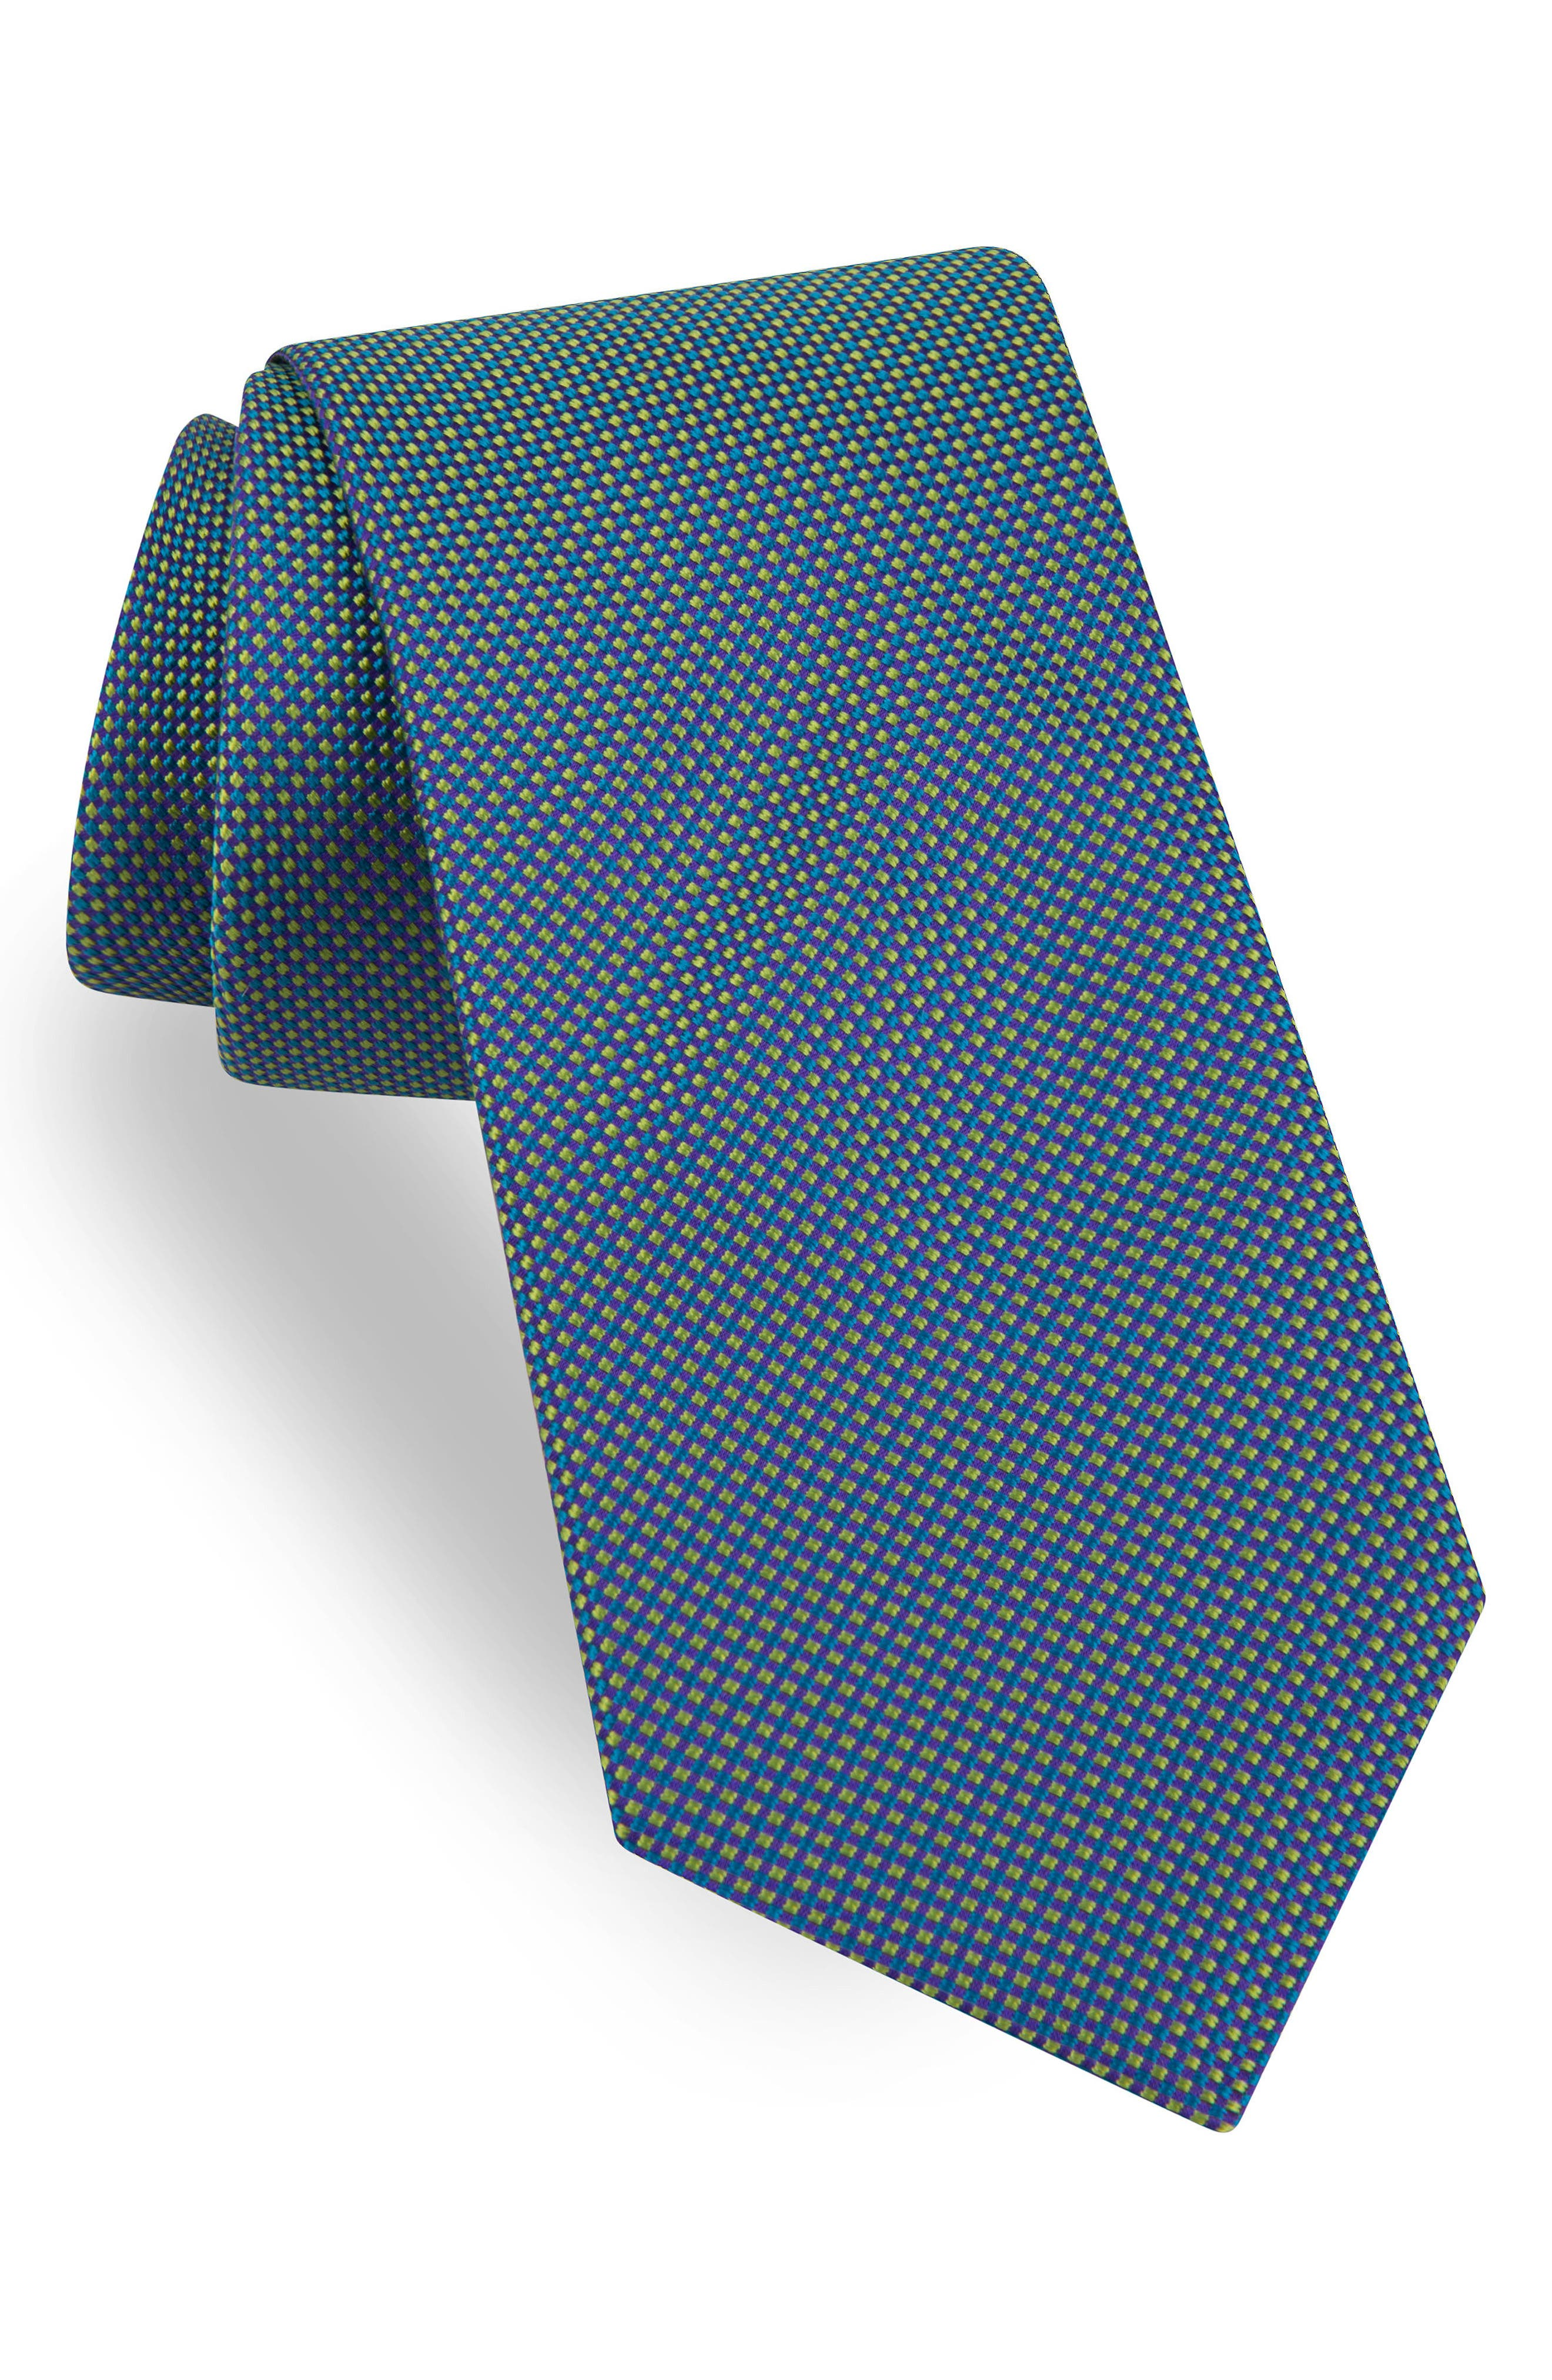 Solid Silk Tie,                             Main thumbnail 1, color,                             300